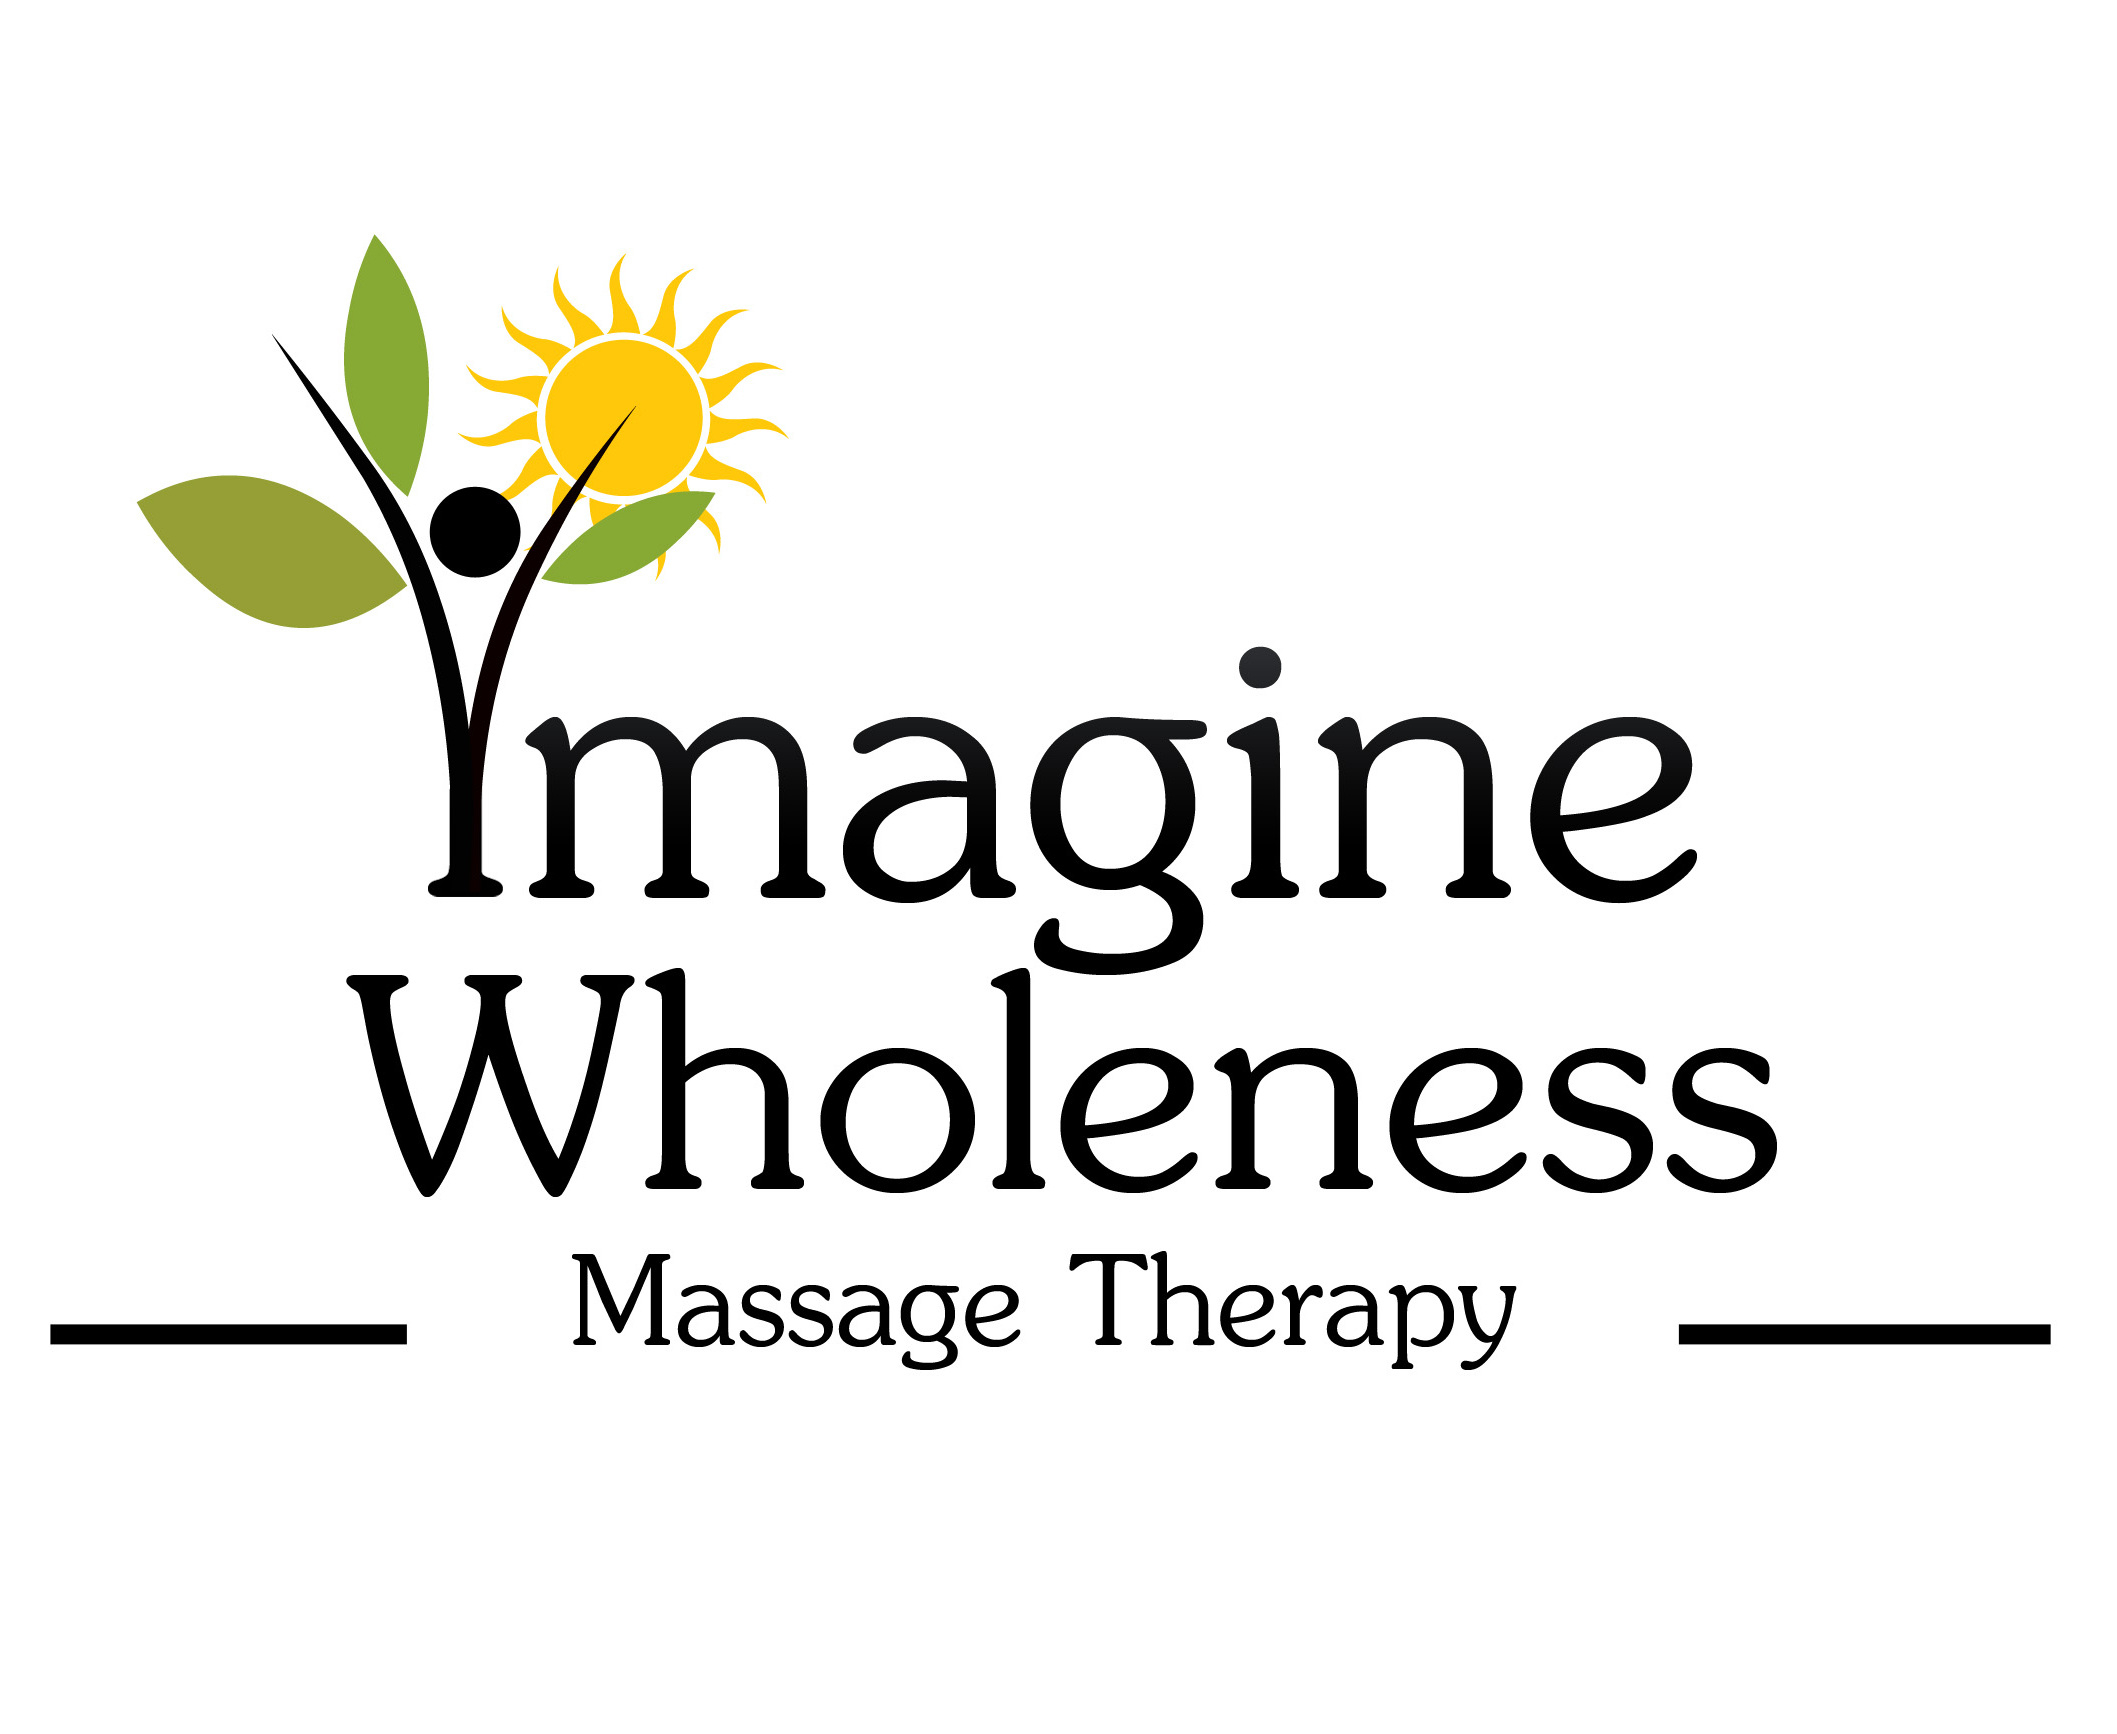 Imagine Wholeness Massage Therapy Logo